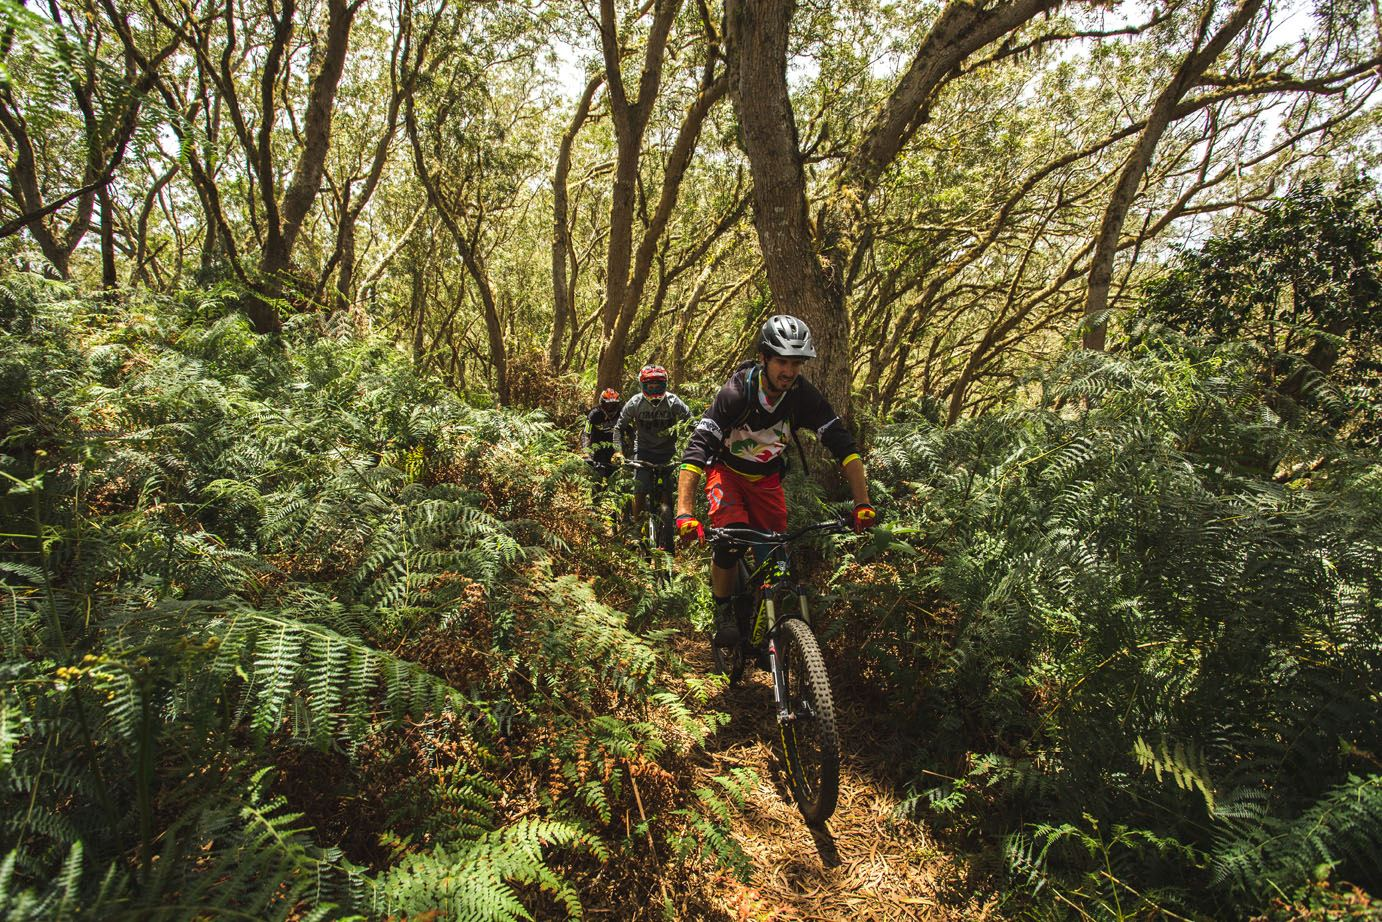 Zarlor thrills and spills – Bike adventure